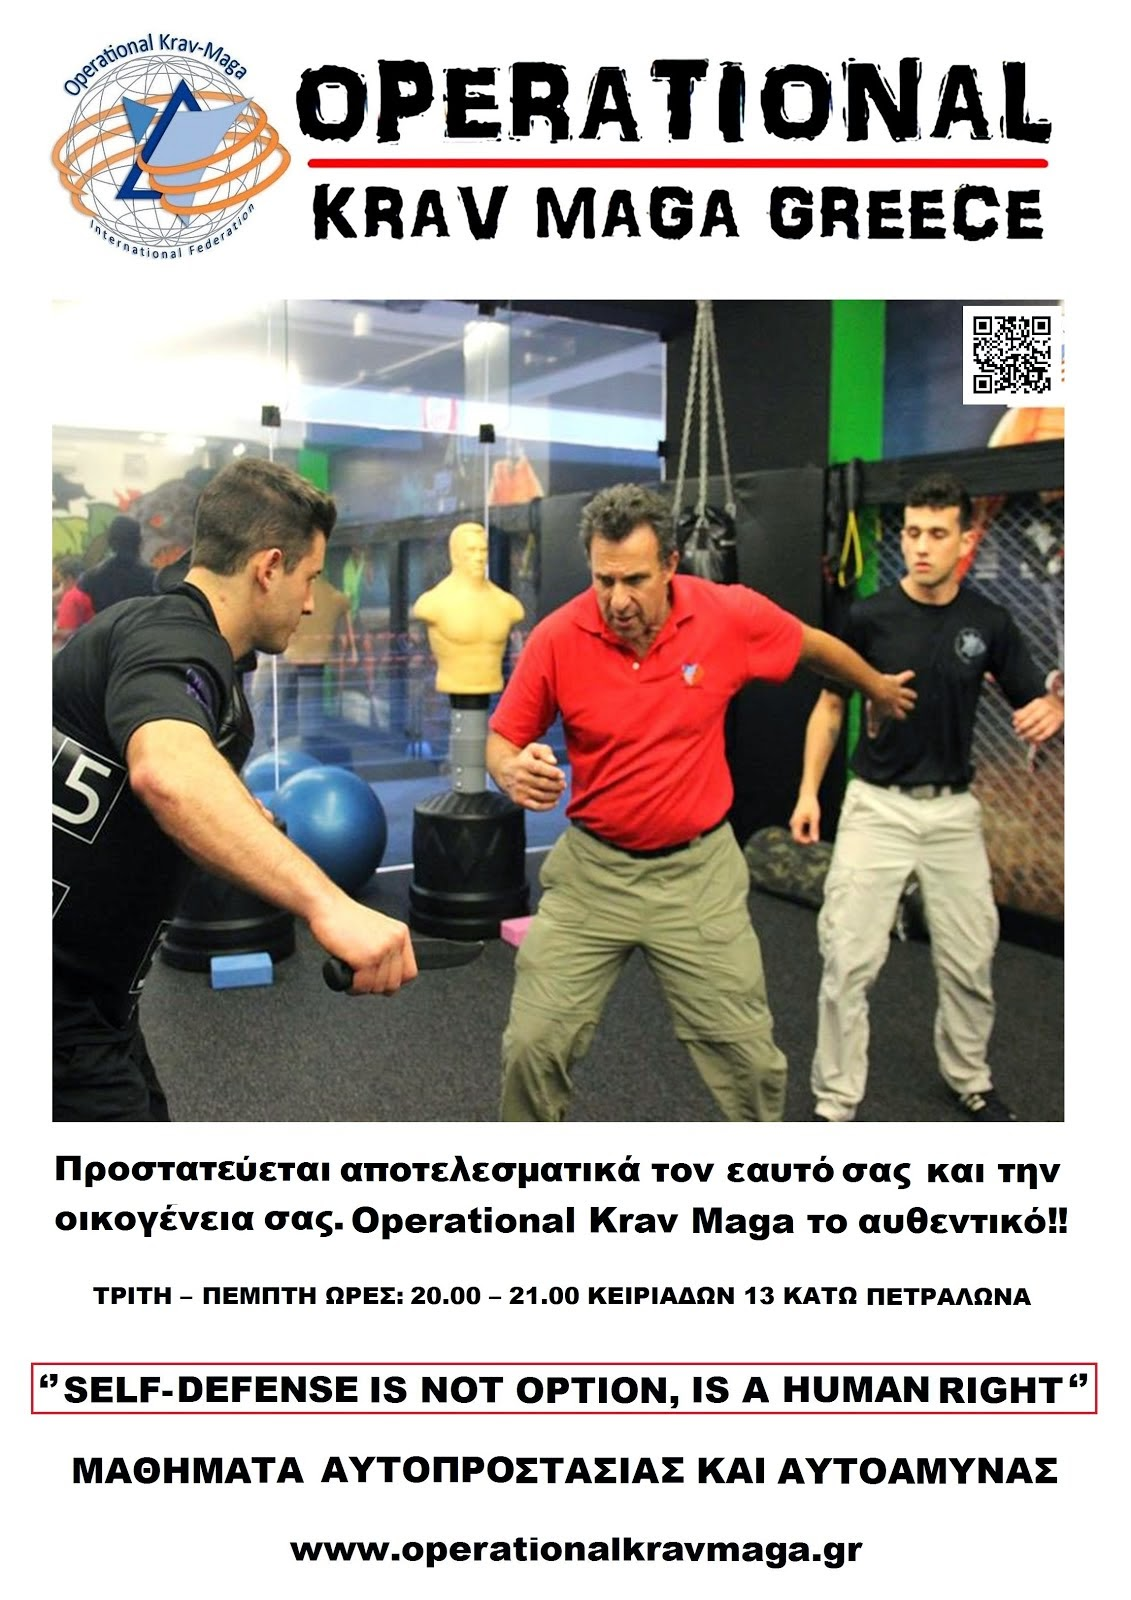 OPERATIONAL KRAV MAGA GREECE